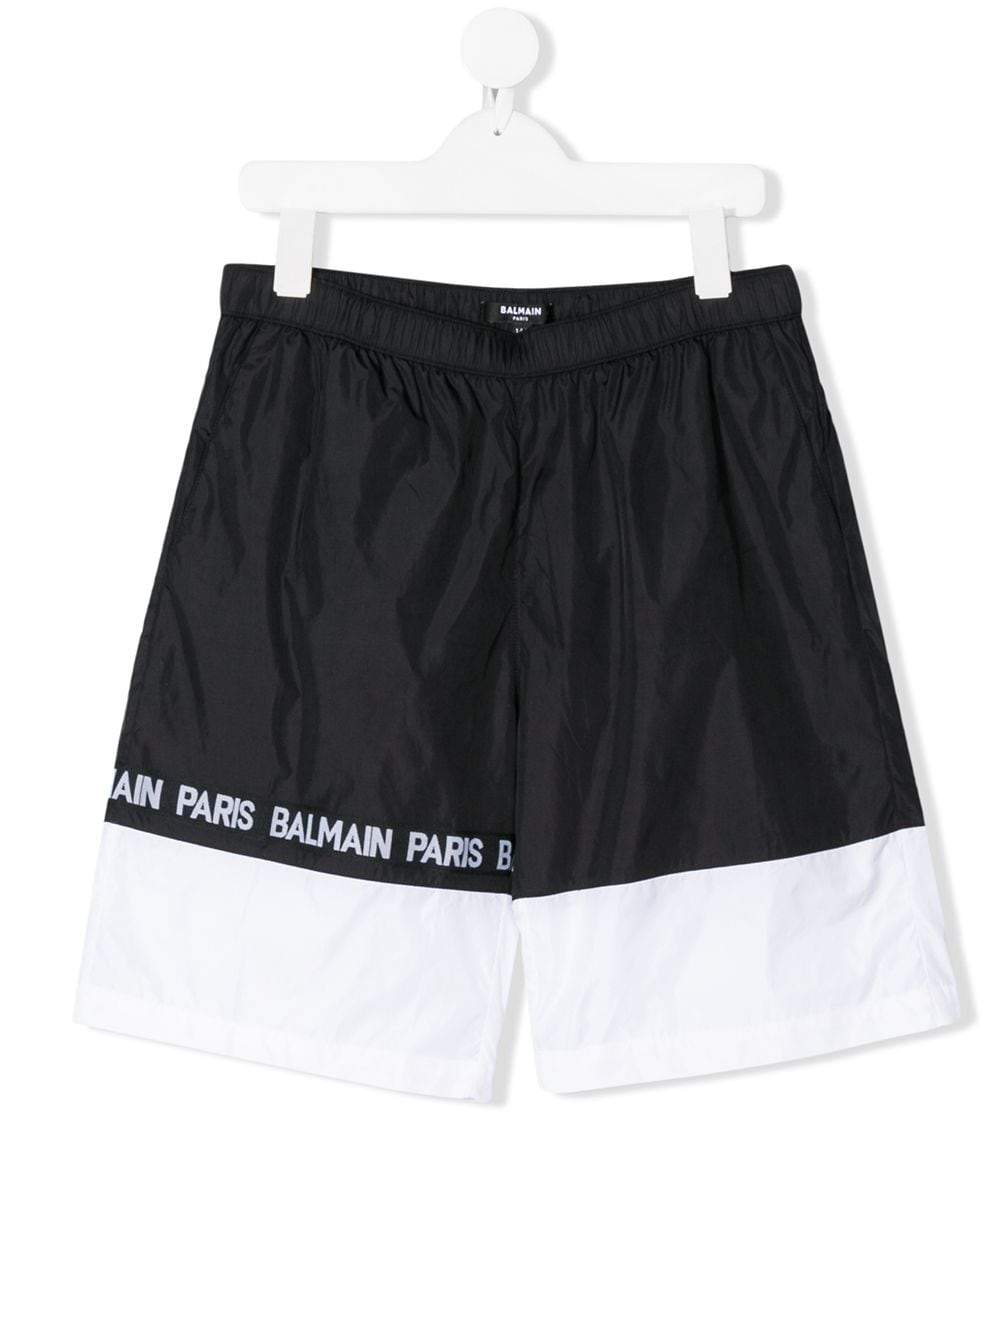 BALMAIN KIDS striped logo printed swim shorts black/white - Maison De Fashion